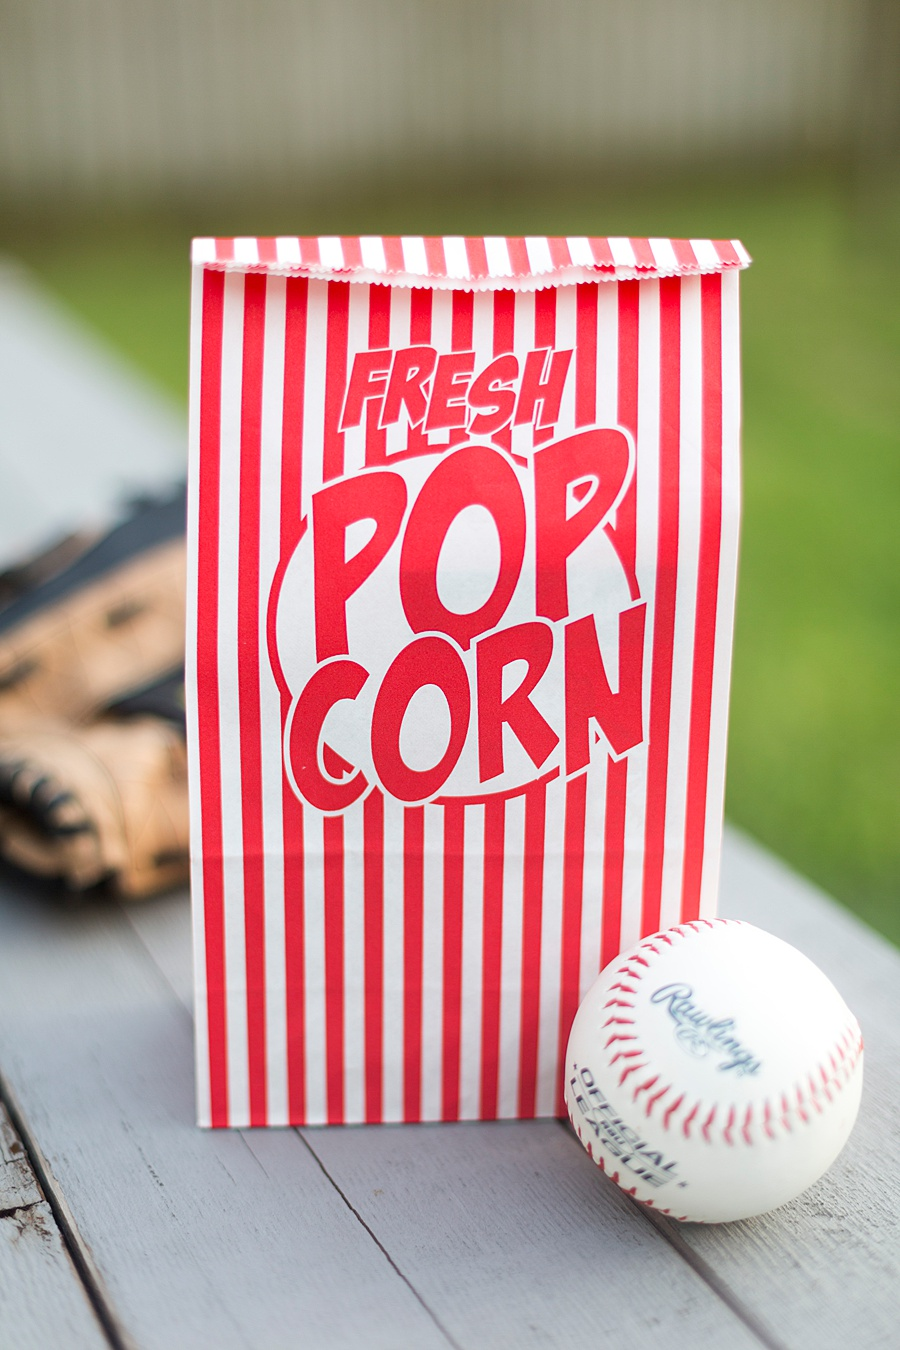 t ball game day snacks both moms and kids will love the hurried